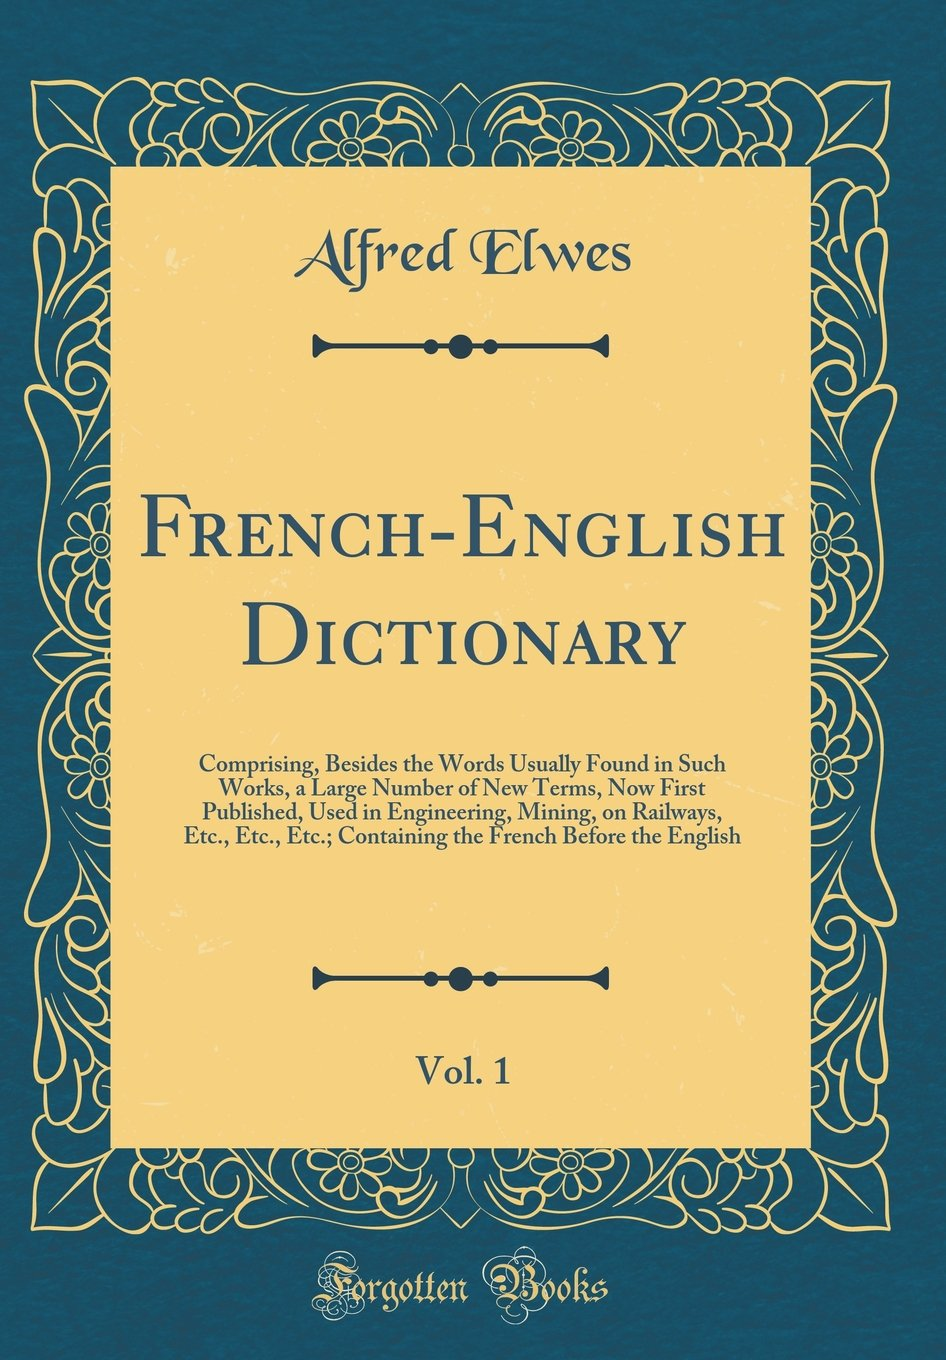 Download French-English Dictionary, Vol. 1: Comprising, Besides the Words Usually Found in Such Works, a Large Number of New Terms, Now First Published, Used ... Containing the French Before the English pdf